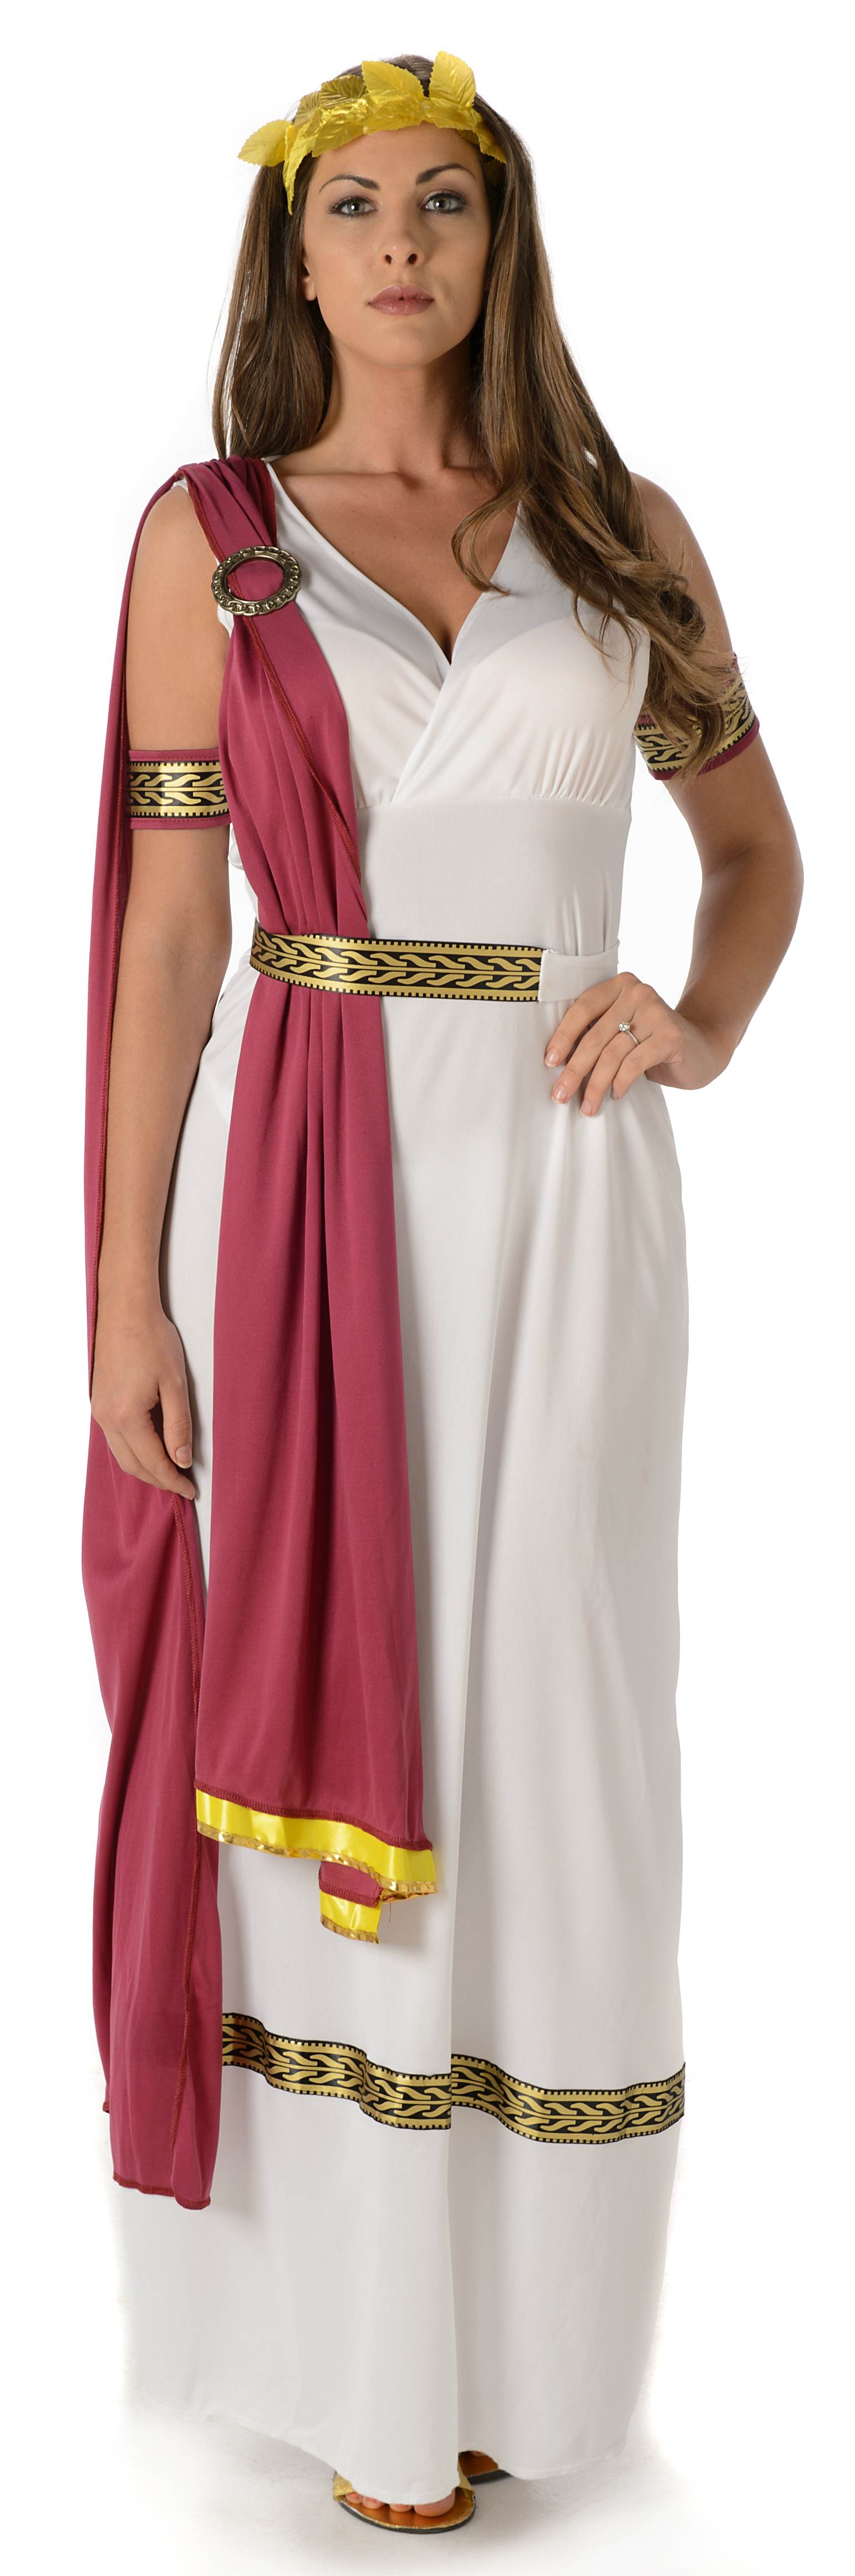 67babd853 Sentinel Roman Goddess Ladies Fancy Dress Ancient Greek Athena Womens  Adults Costumes New Sc 1 St EBay